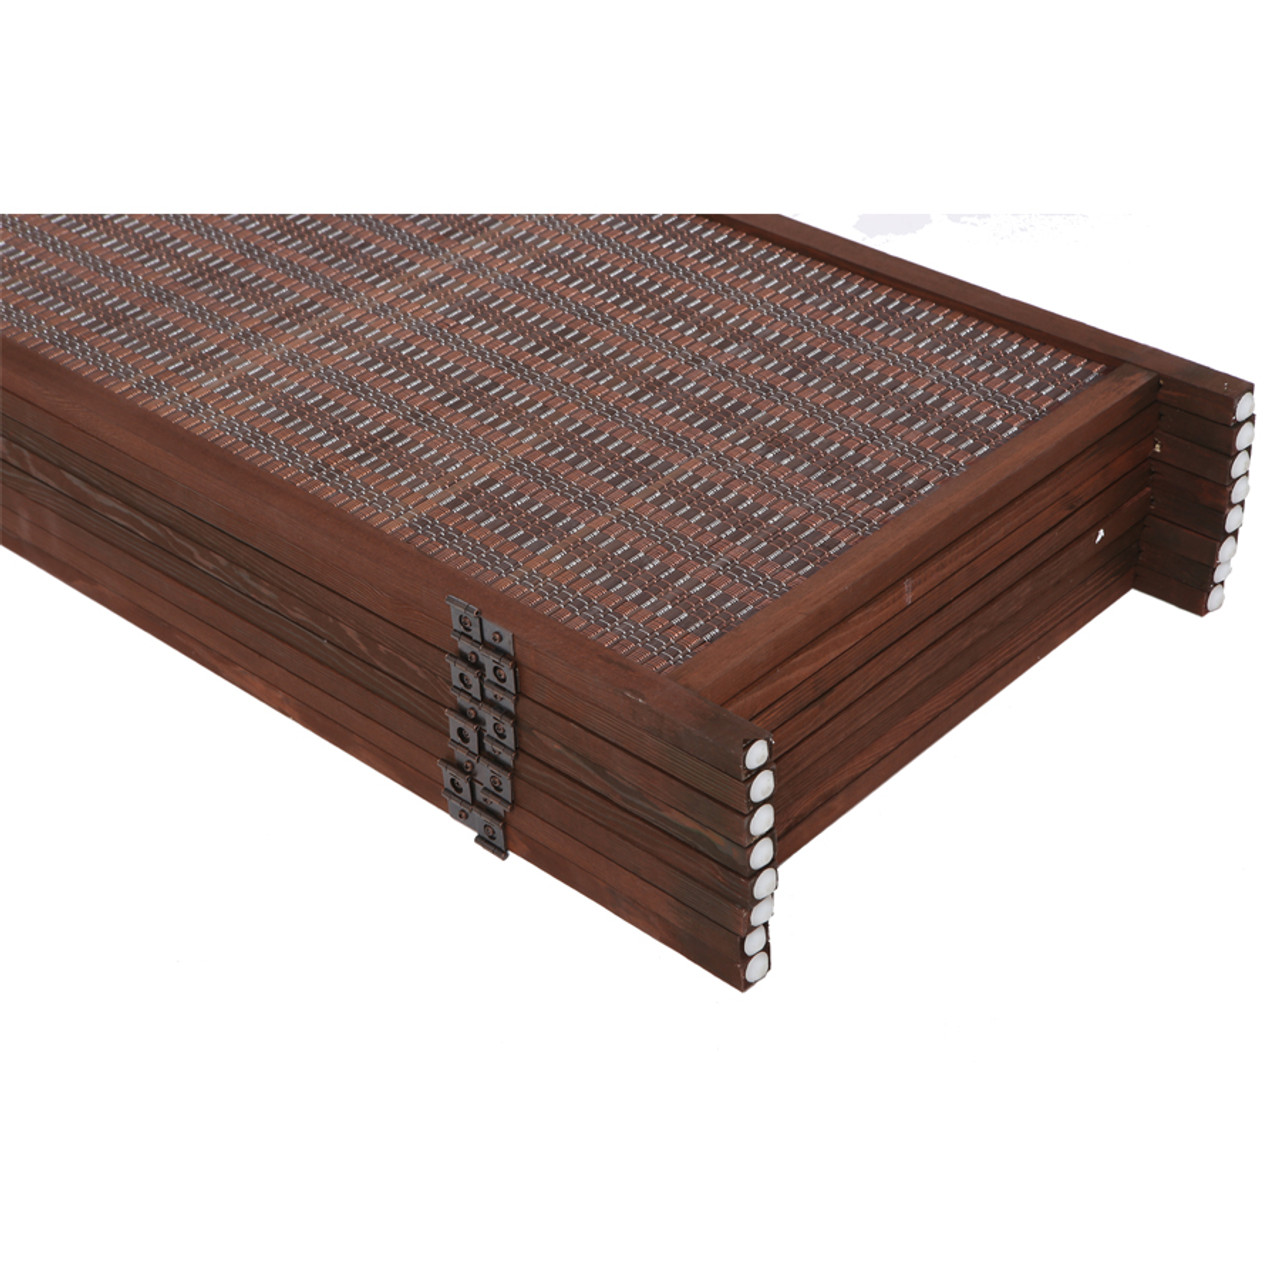 6 Panel Natural, Brown, or Black Color Wood and Bamboo Weave Room Divider